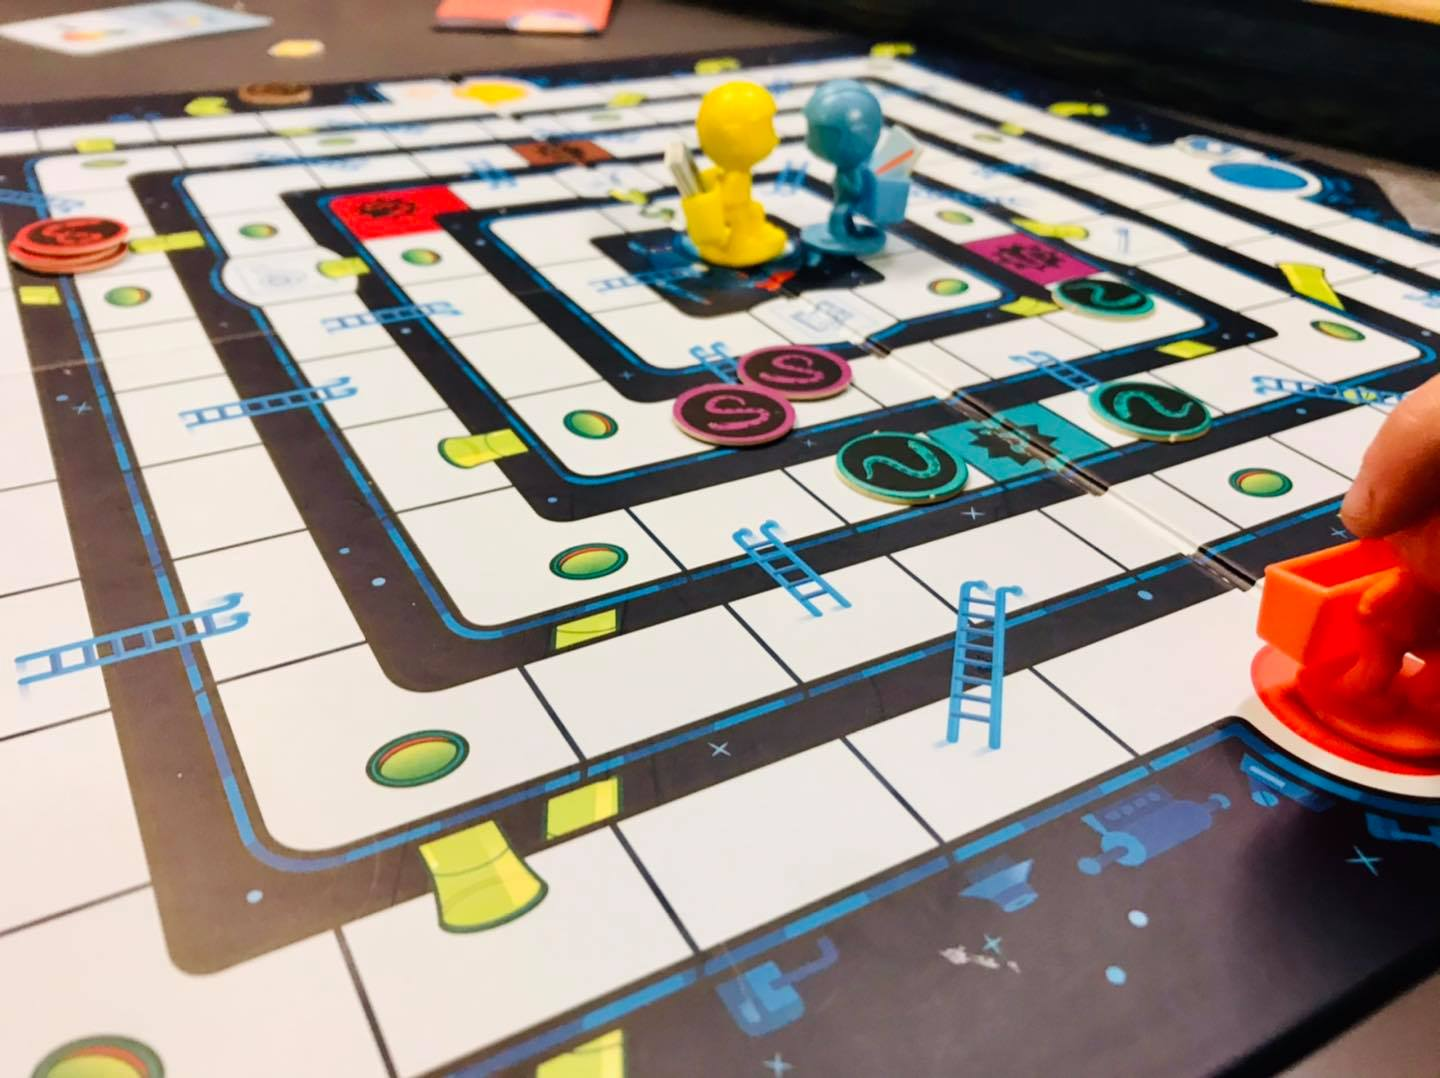 mole rats in space board game at battlehops brewing katy tx board game review